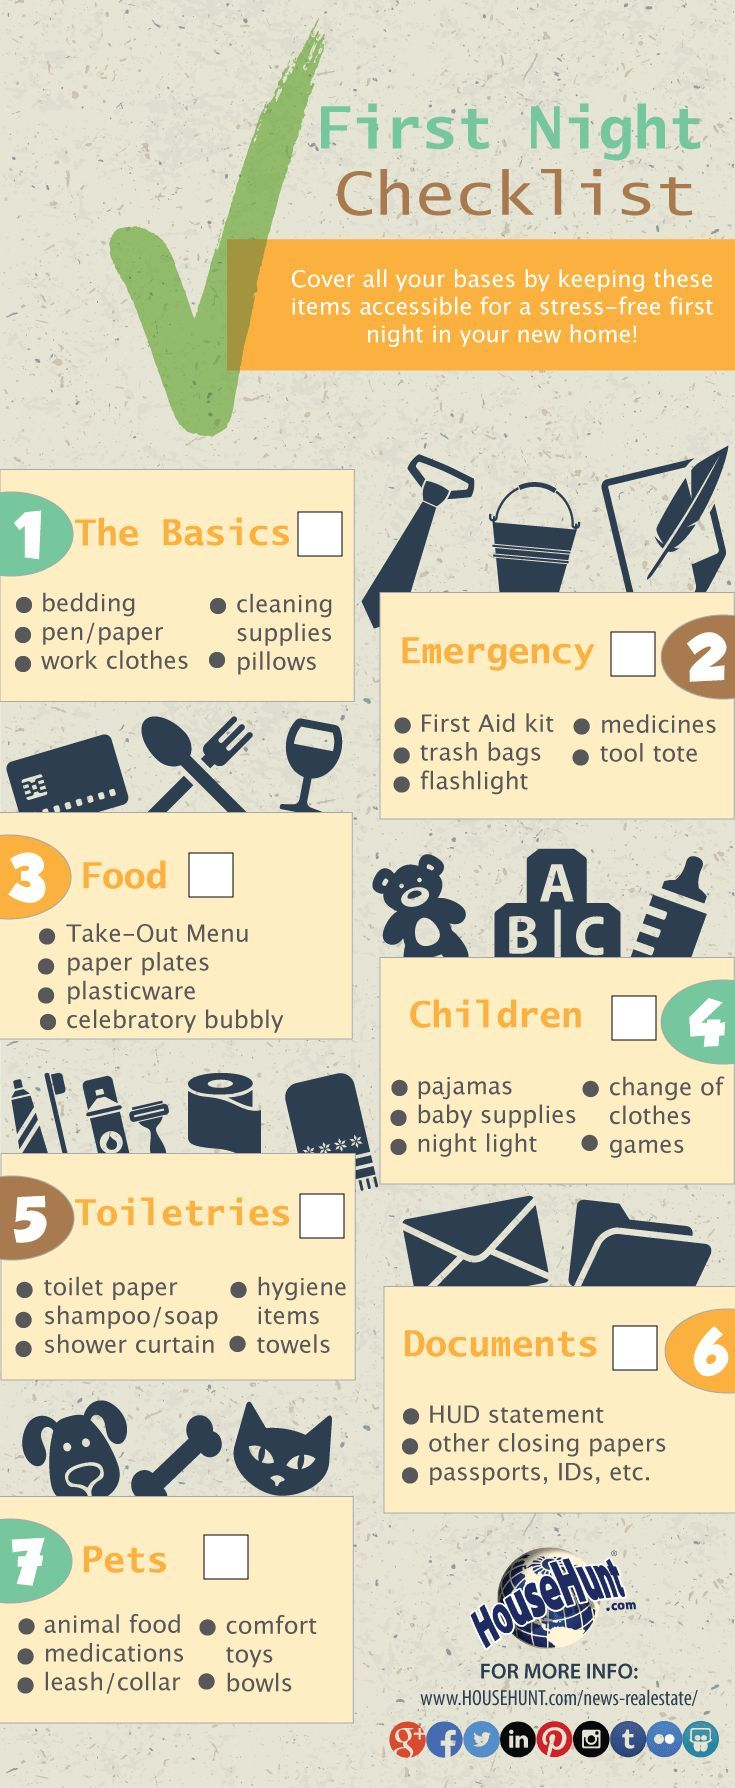 First Night In New House Checklist [Infographic] | HouseHunt Real Estate Blog